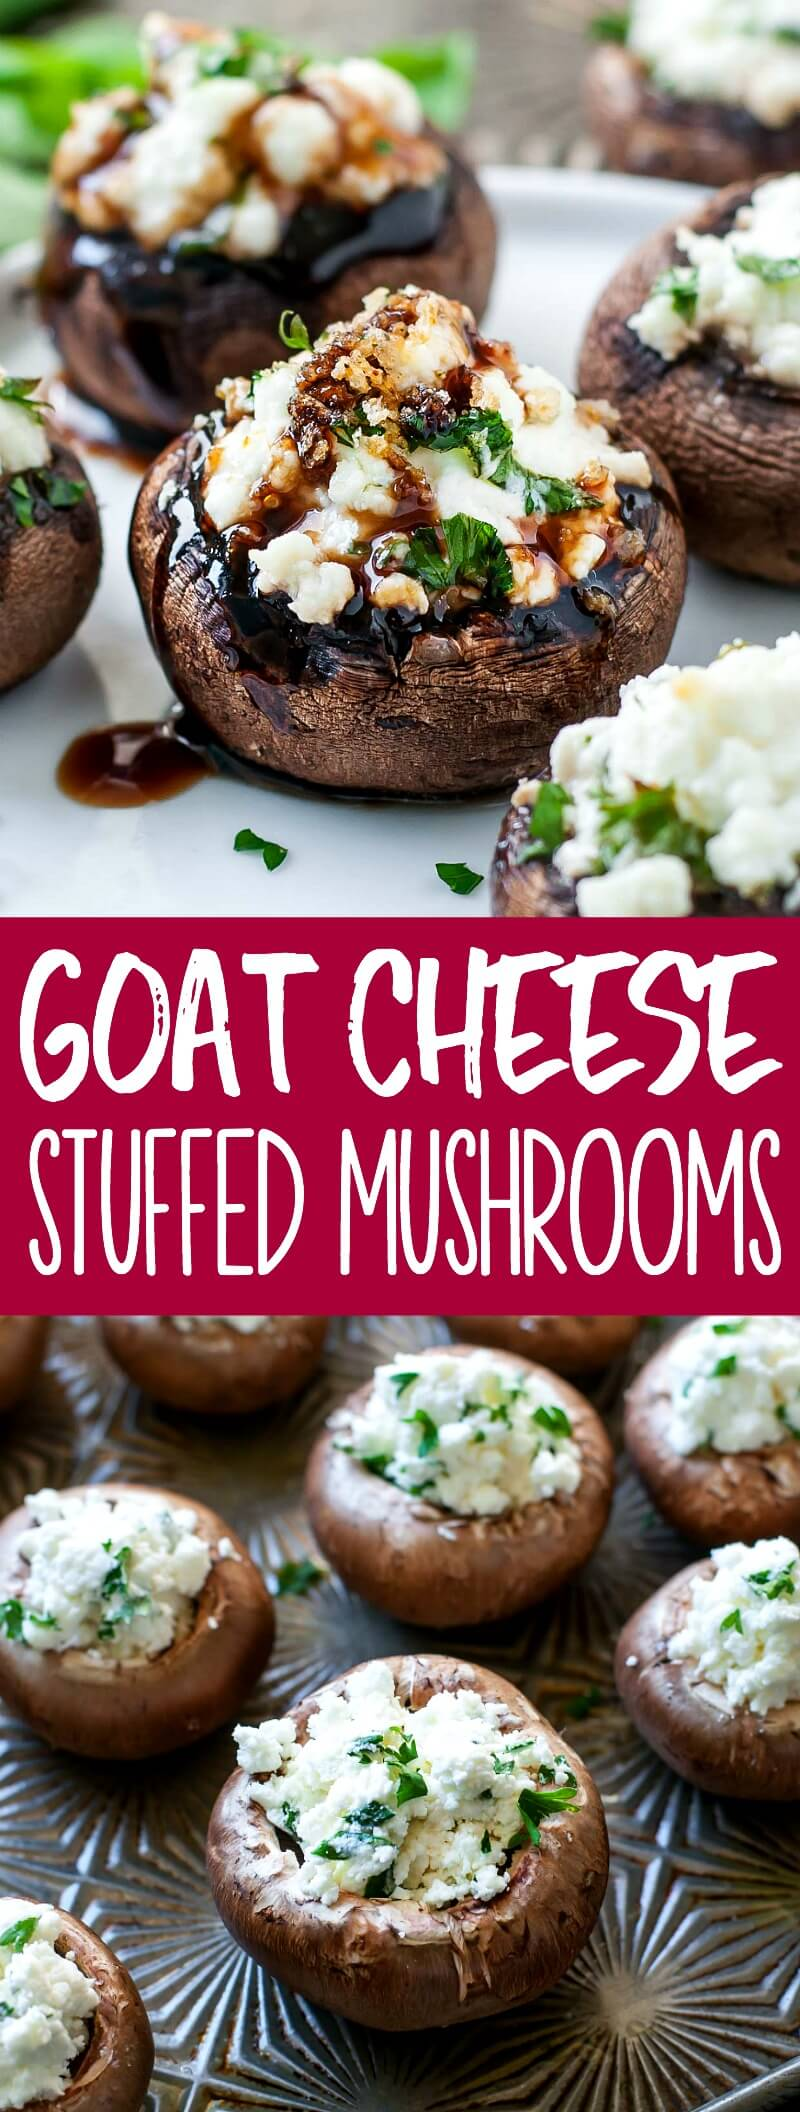 Let's jazz up our appetizer game! These herbed goat cheese stuffed mushrooms are piled high withsavory whipped goat cheese, spiked with fresh herbs, and drizzled with a sweet + savory balsamic reduction to makethem over-the-top delicious. #appetizer #partyfood #stuffedmushrooms #mushrooms #goatcheese #vegetarian